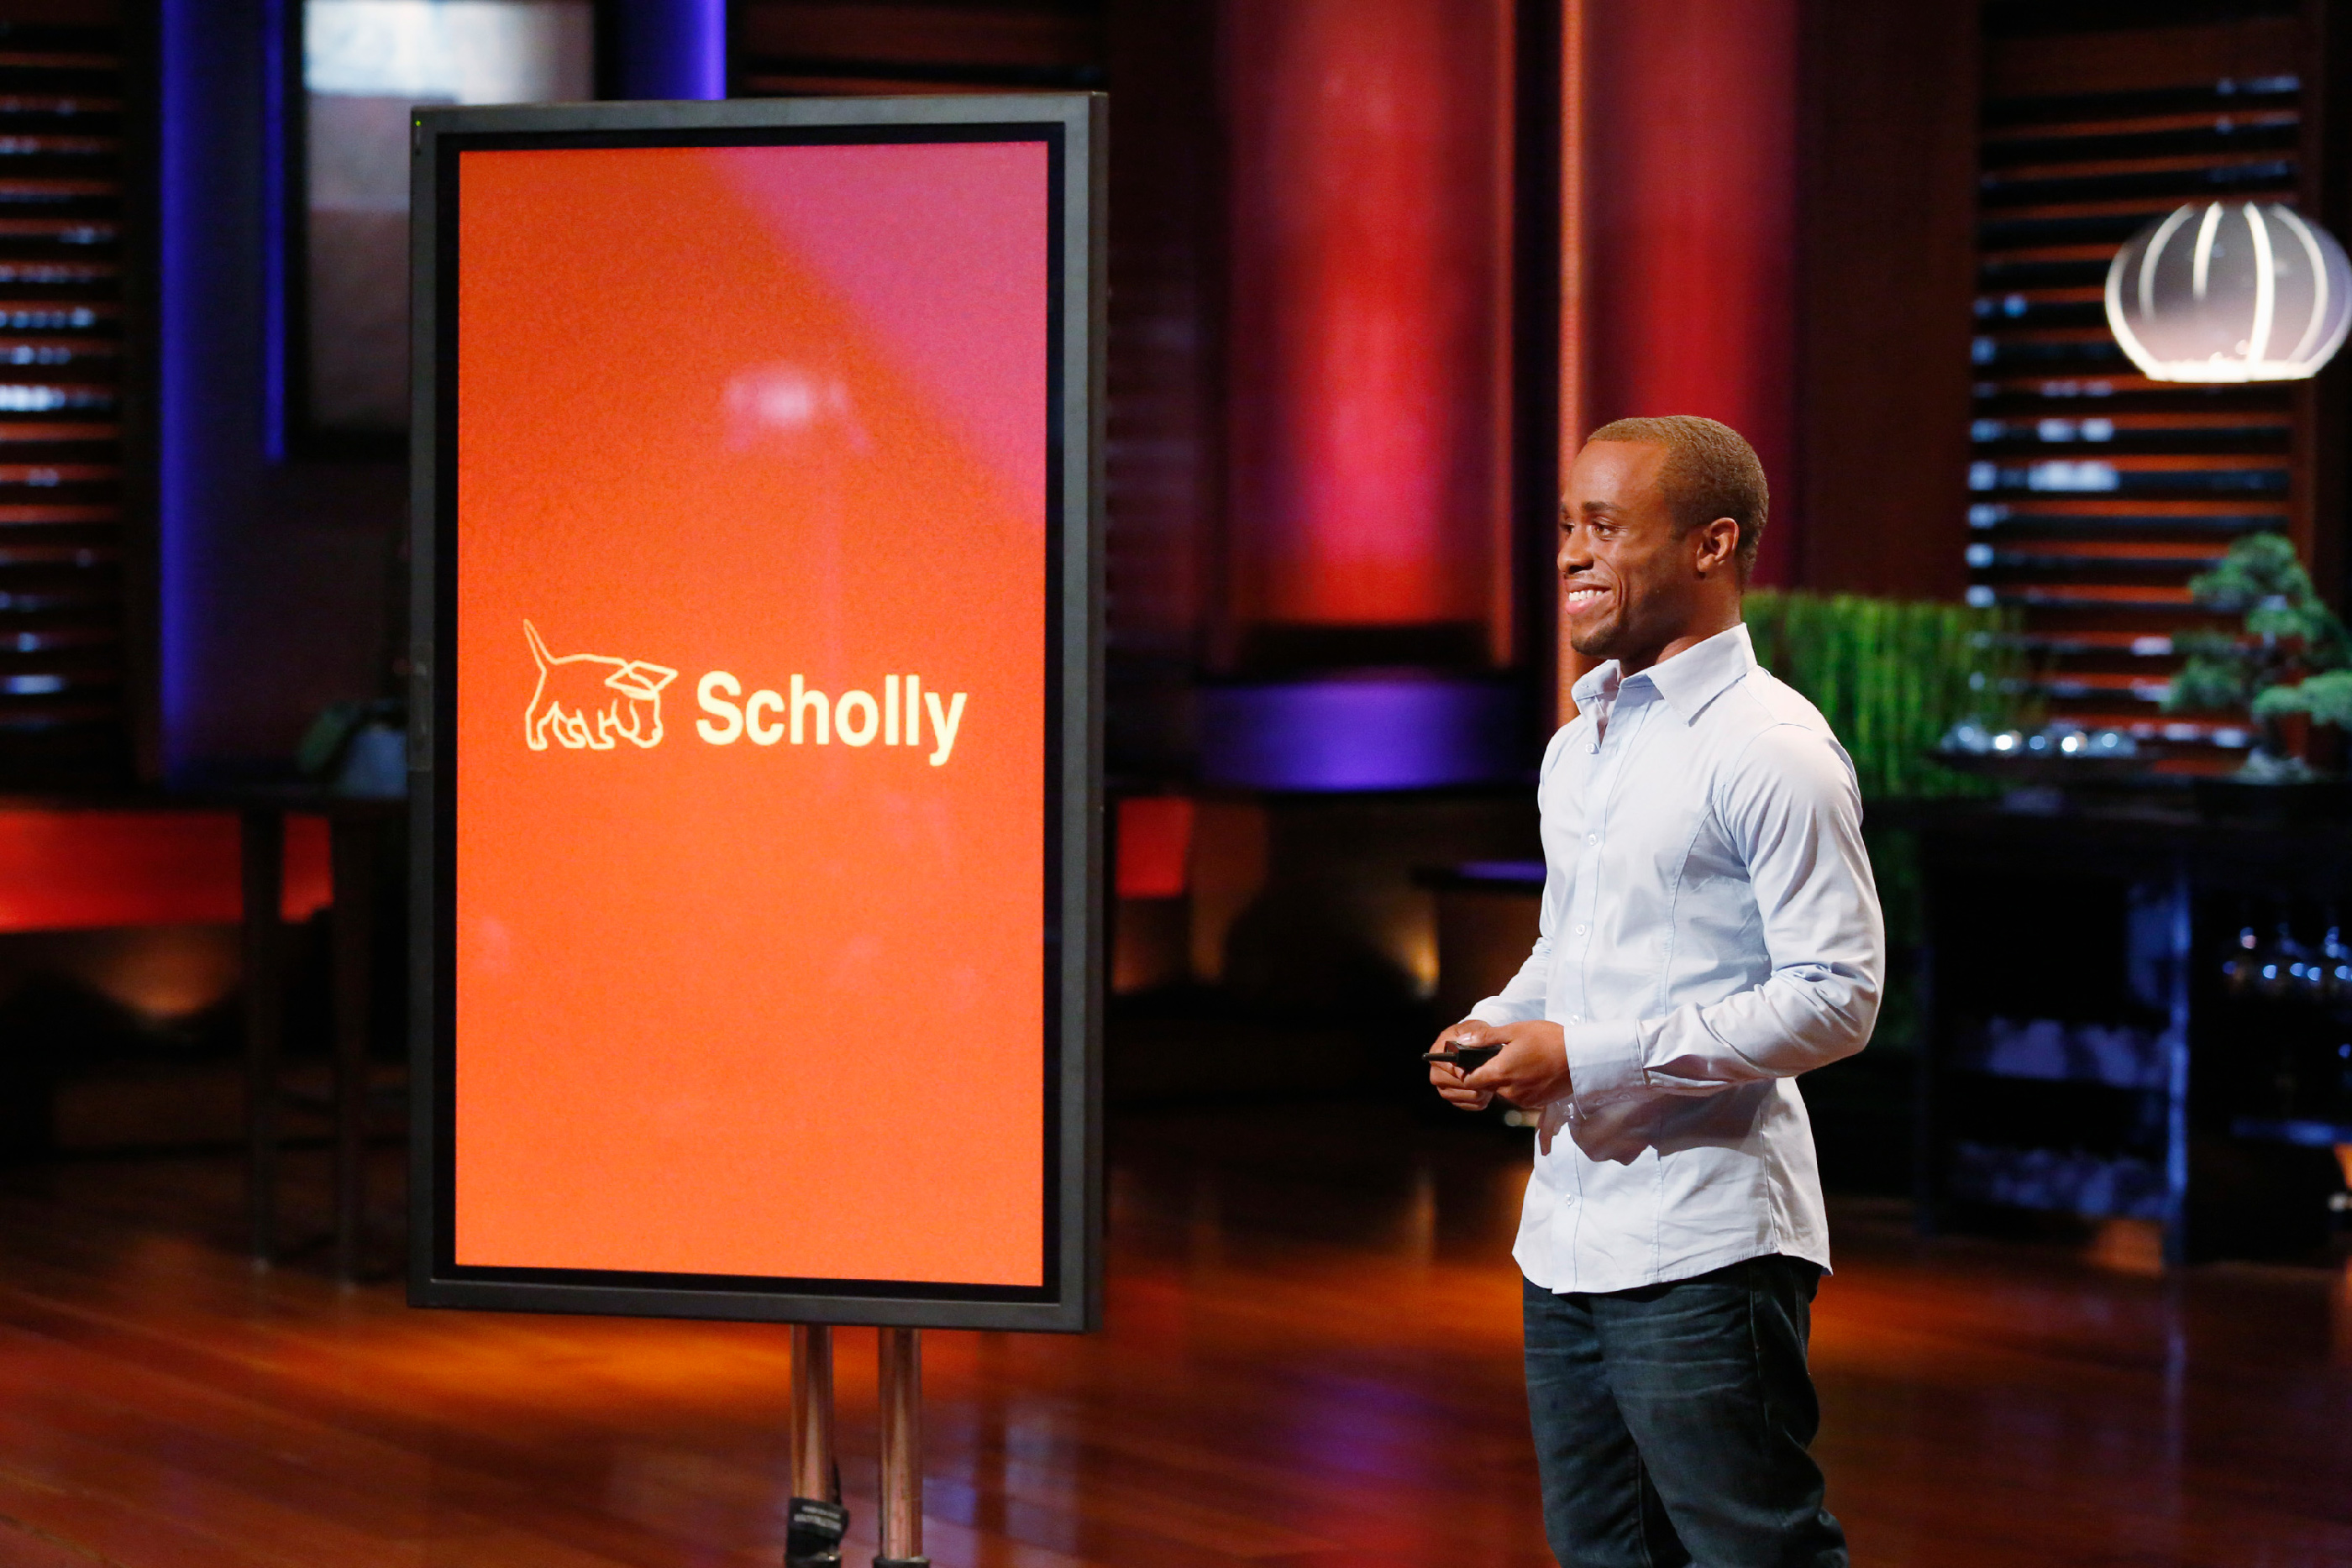 Gray pitched Scholly on ABC's  Shark Tank —and landed $40,000 in funding.